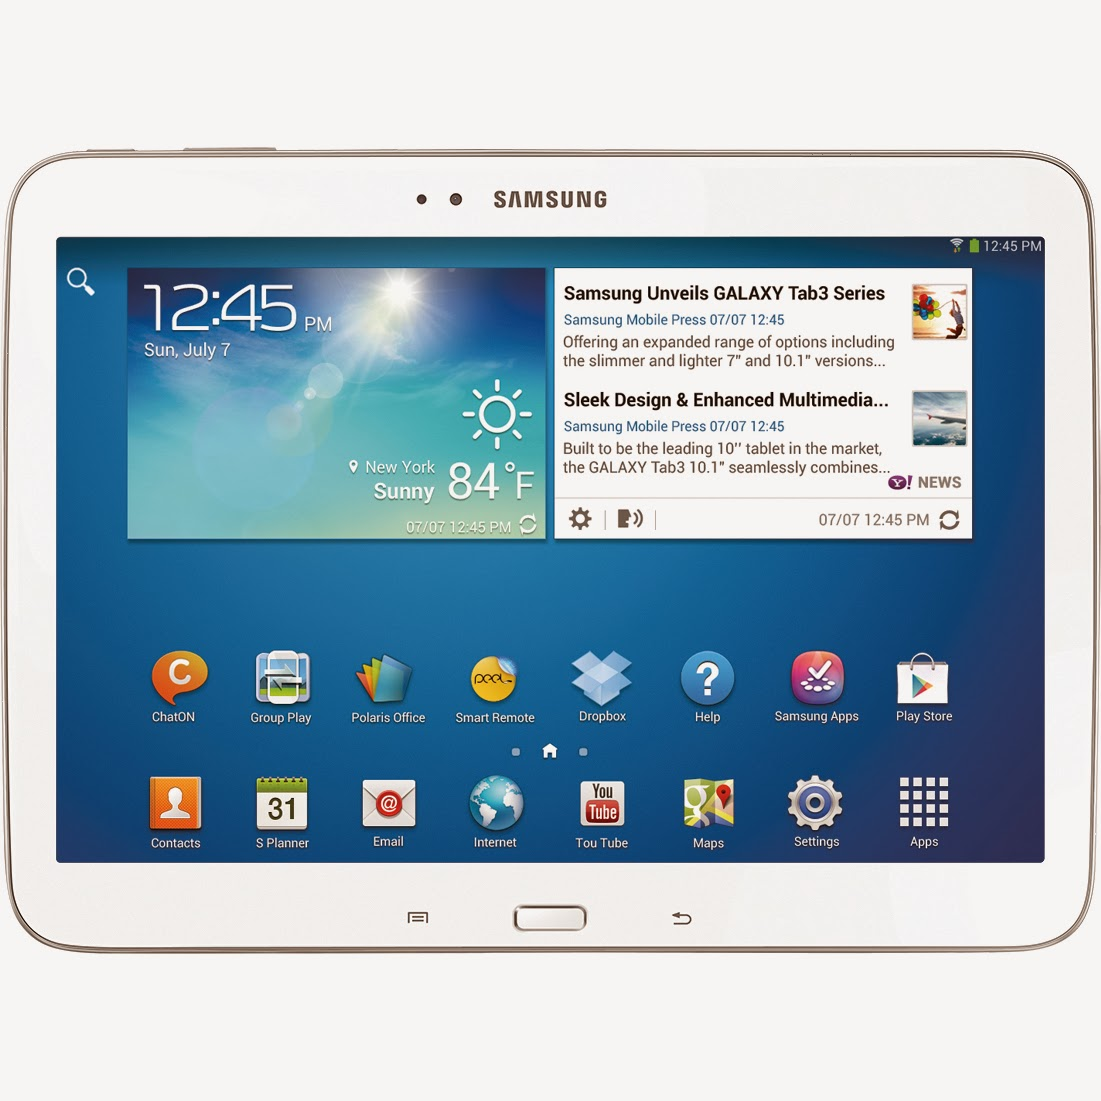 03/26/14 Samsung Galaxy Tab 3 10.1 – 16 GB White With 1 Year Insurance Giveaway